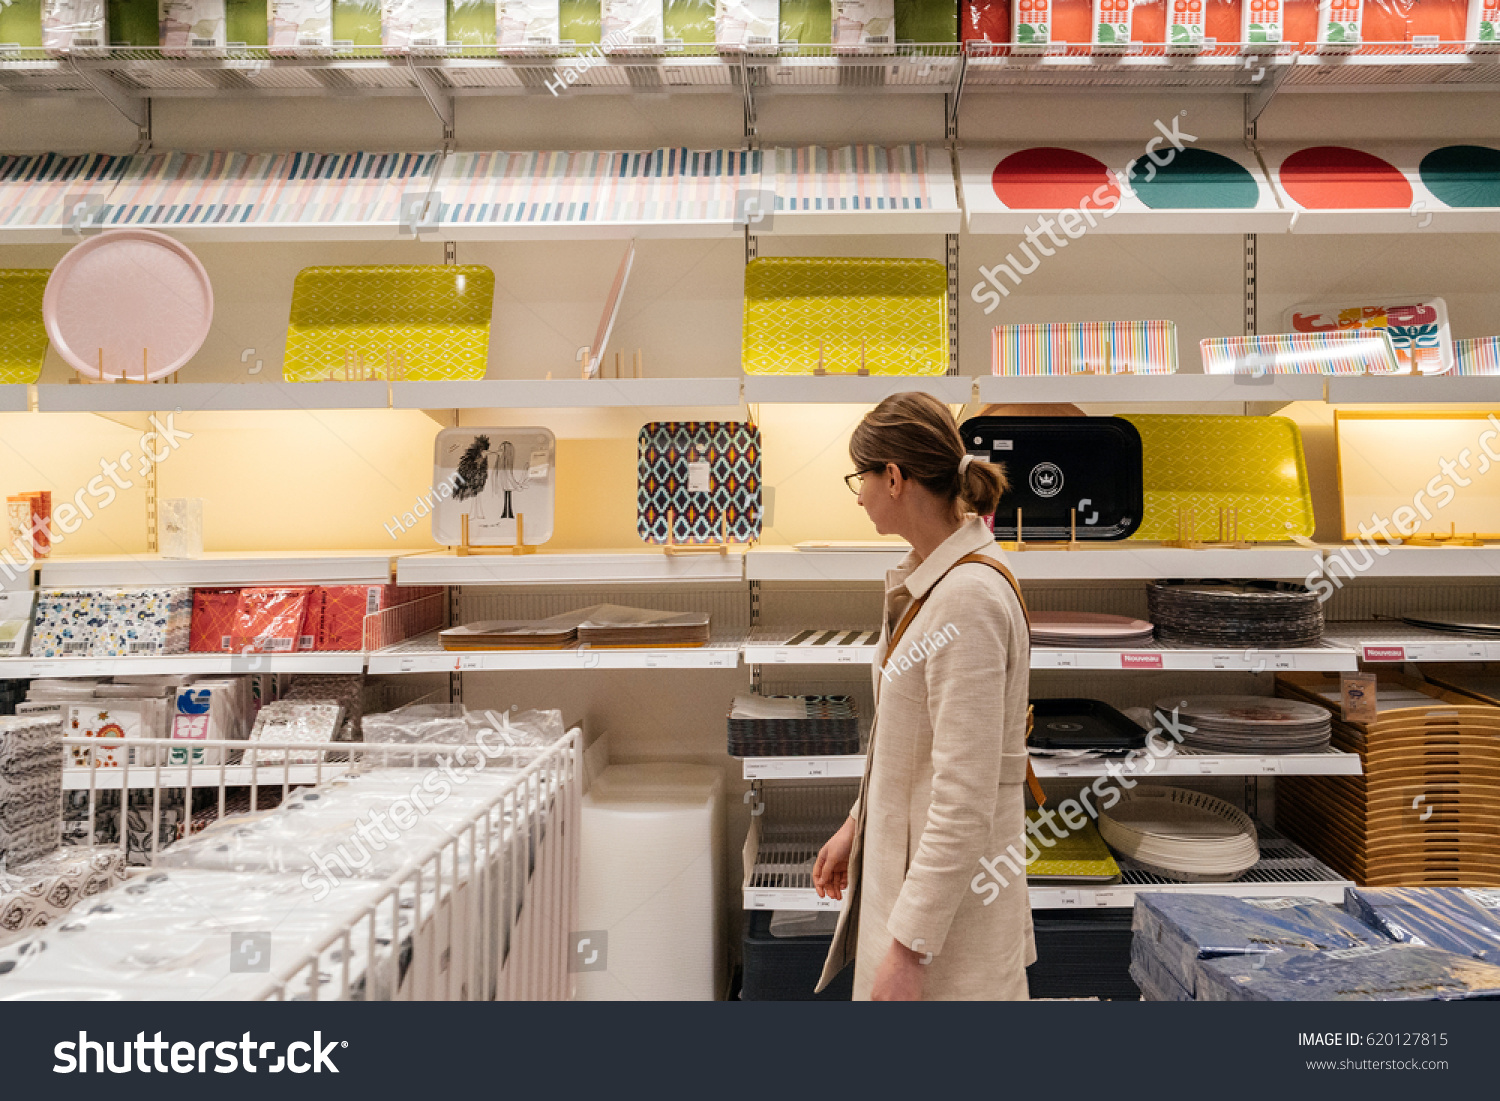 Catalogue Ikea Mulhouse Paris France Apr 10 2017 Woman Stock Photo Edit Now 620127815